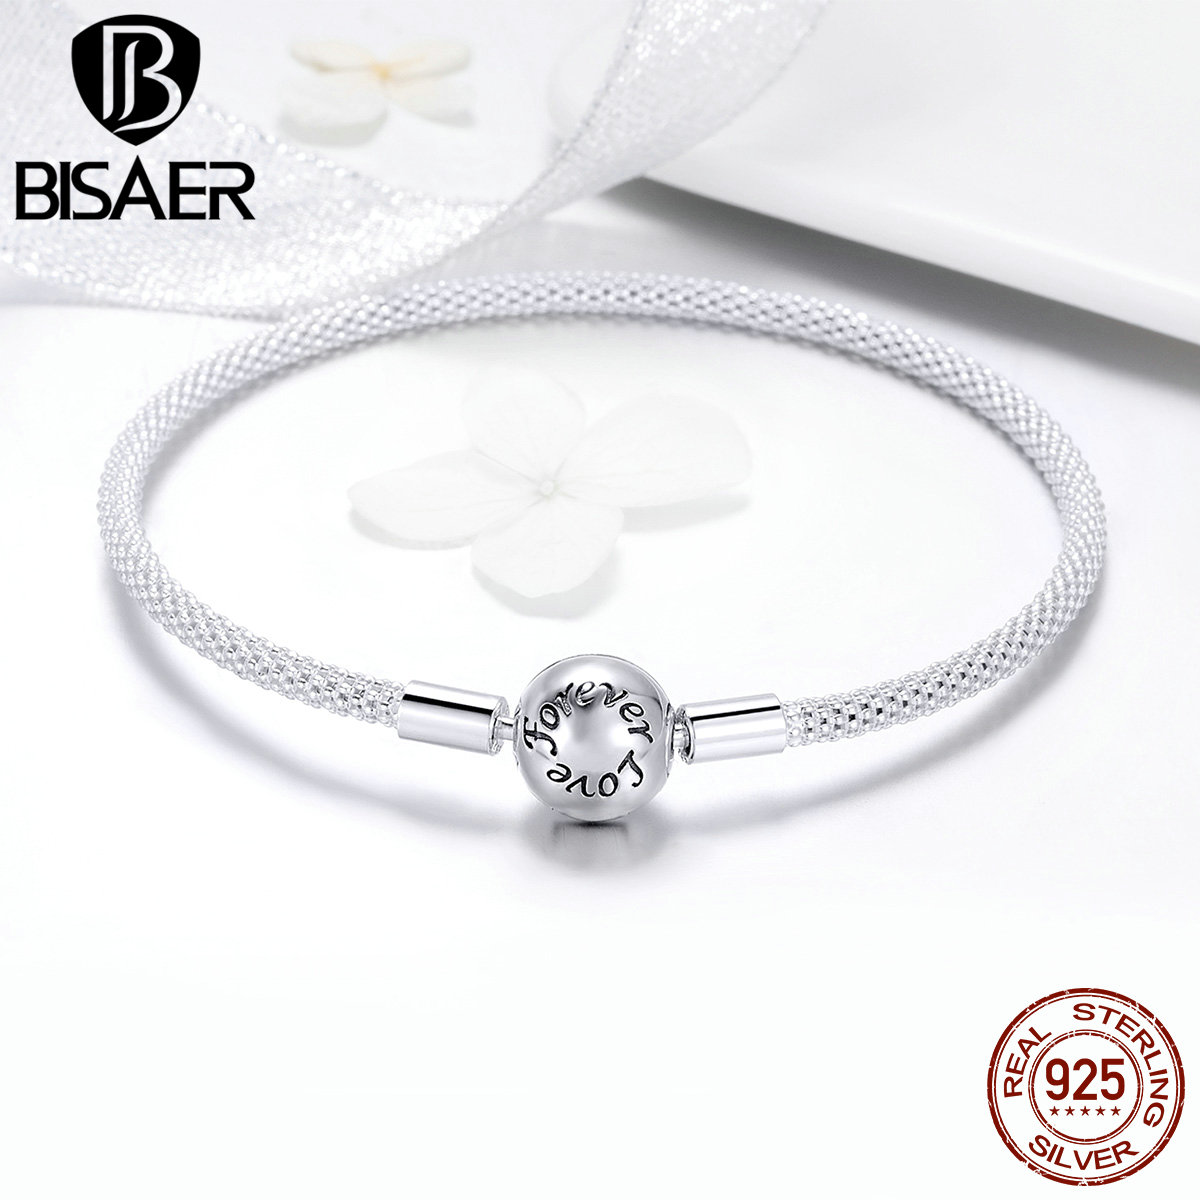 BISAER Silver Charm Bracelet for Women Jewelry Making 925 Sterling Silver Bracelet for Beads 925 Original Fine Jewelry GXB105 дозатор жидкого мыла grampus laguna gr 7812